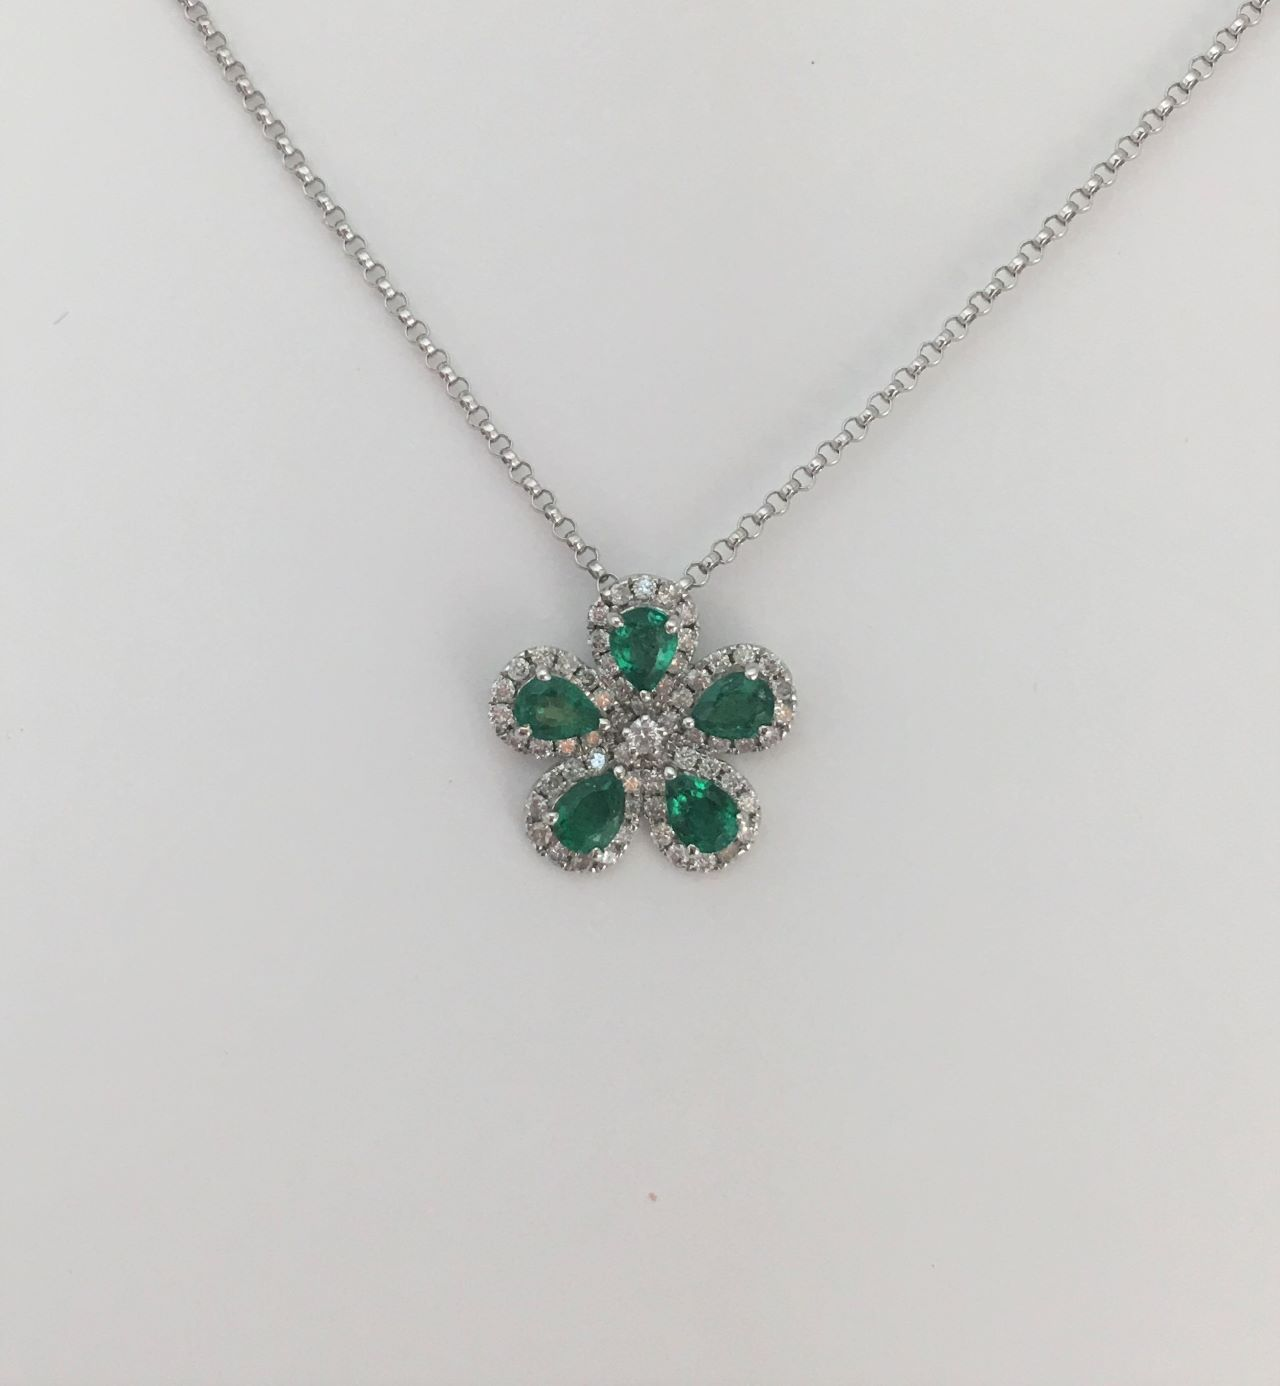 Over Half Carats Emerald Floral Design Pendant